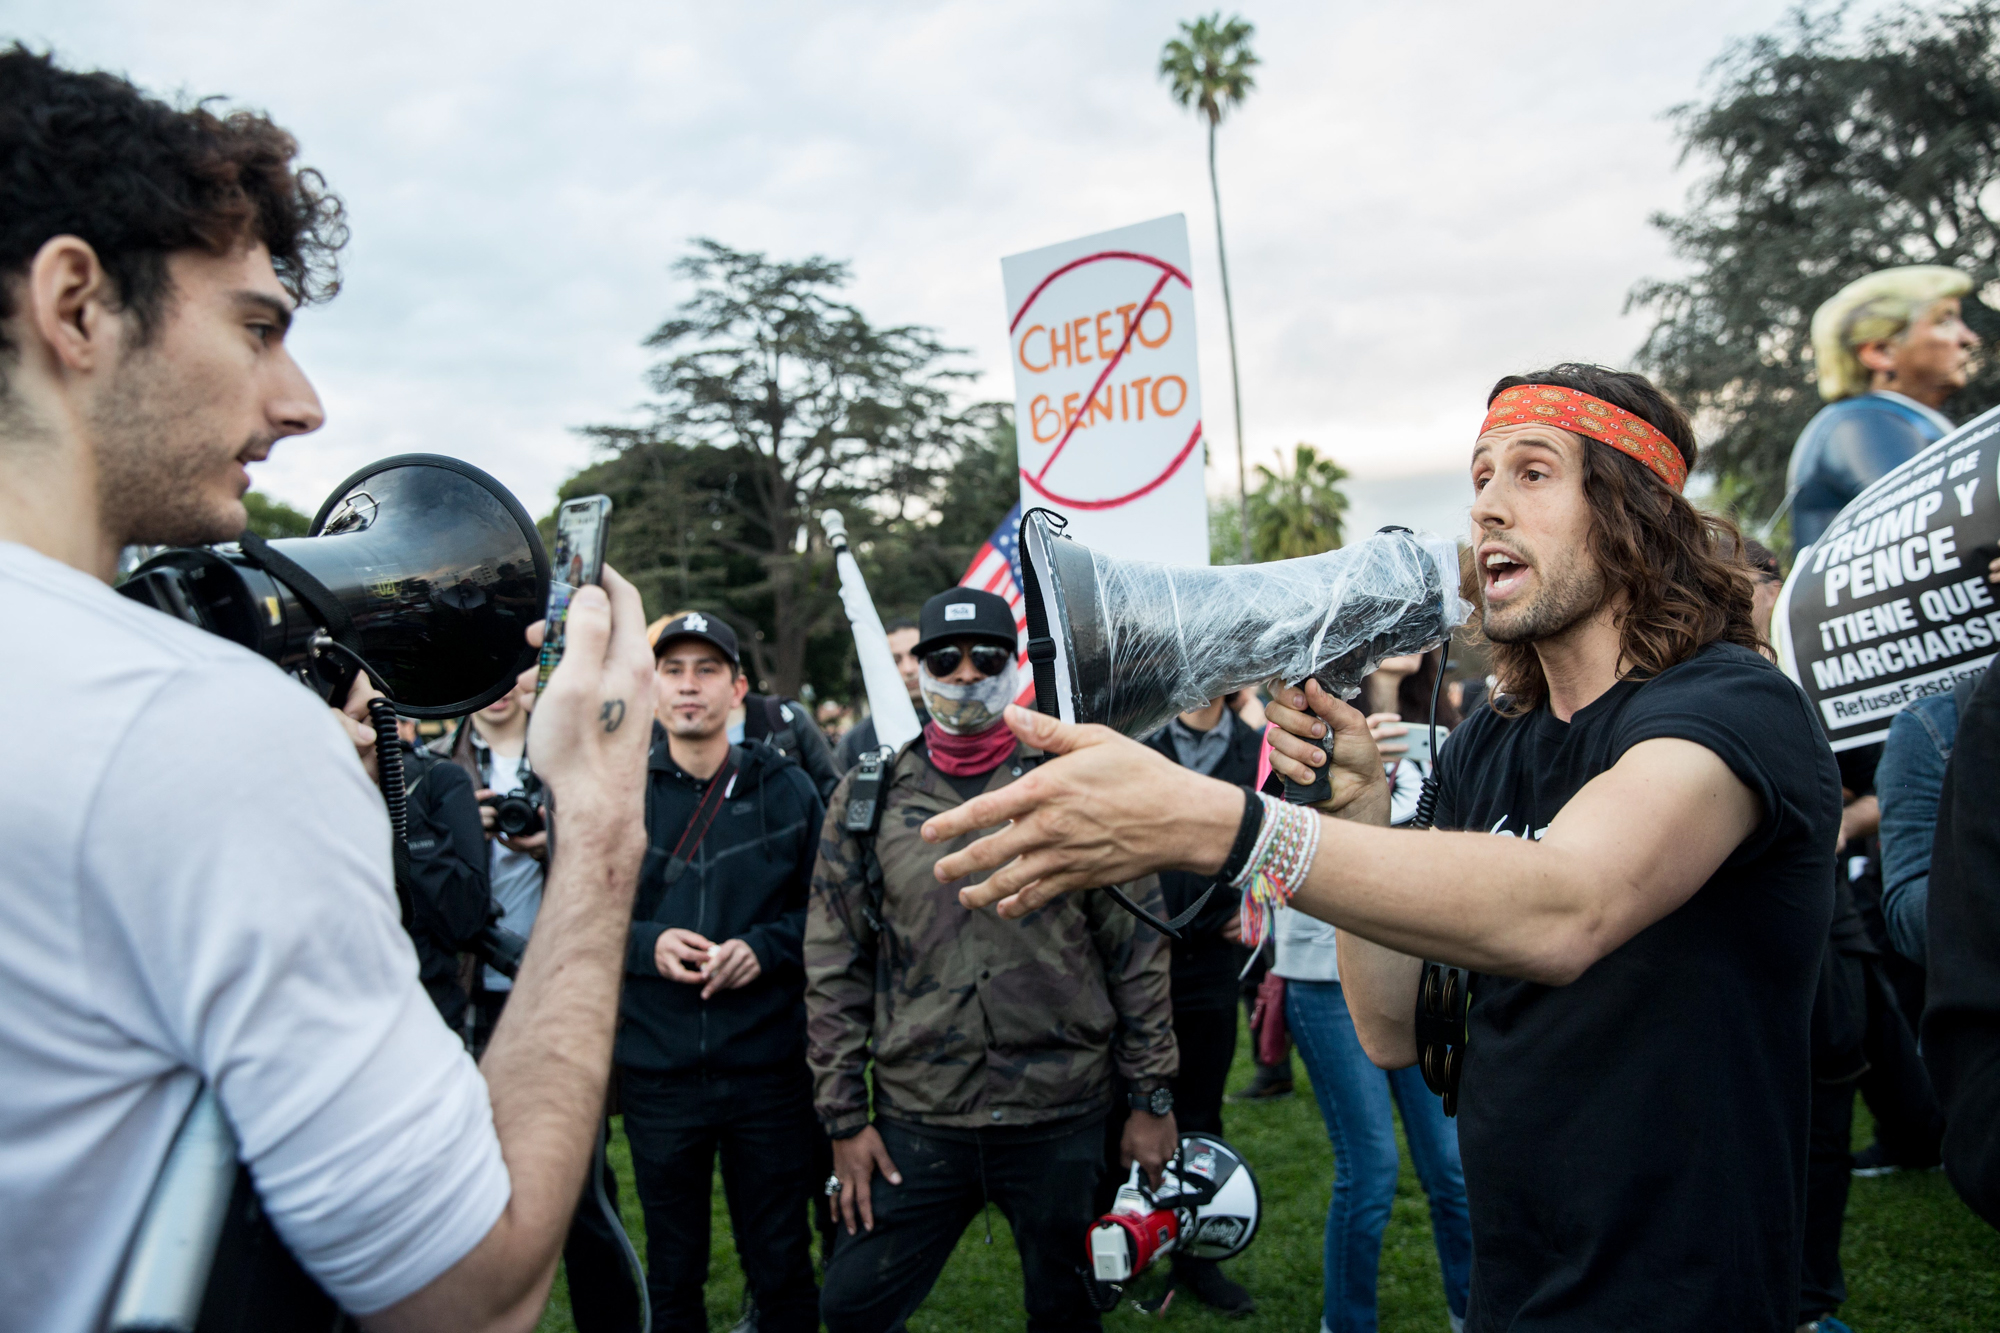 Revolution LA member and anti Trump supporter Daniel McCollister (right) tries having a discussion over the megaphone with an anti-Trump supporter (left) during the Los Angeles Anti-Trump rally that took place in Beverly Gardens Park, in Beverly Hills California on Tuesday, March 13, 2018. As President Donald Trump made his way to a fundraiser in Beverly Hills, protesters were there to greet him with their dissent during Tuesdays protest. (Photo by: Matthew Martin)